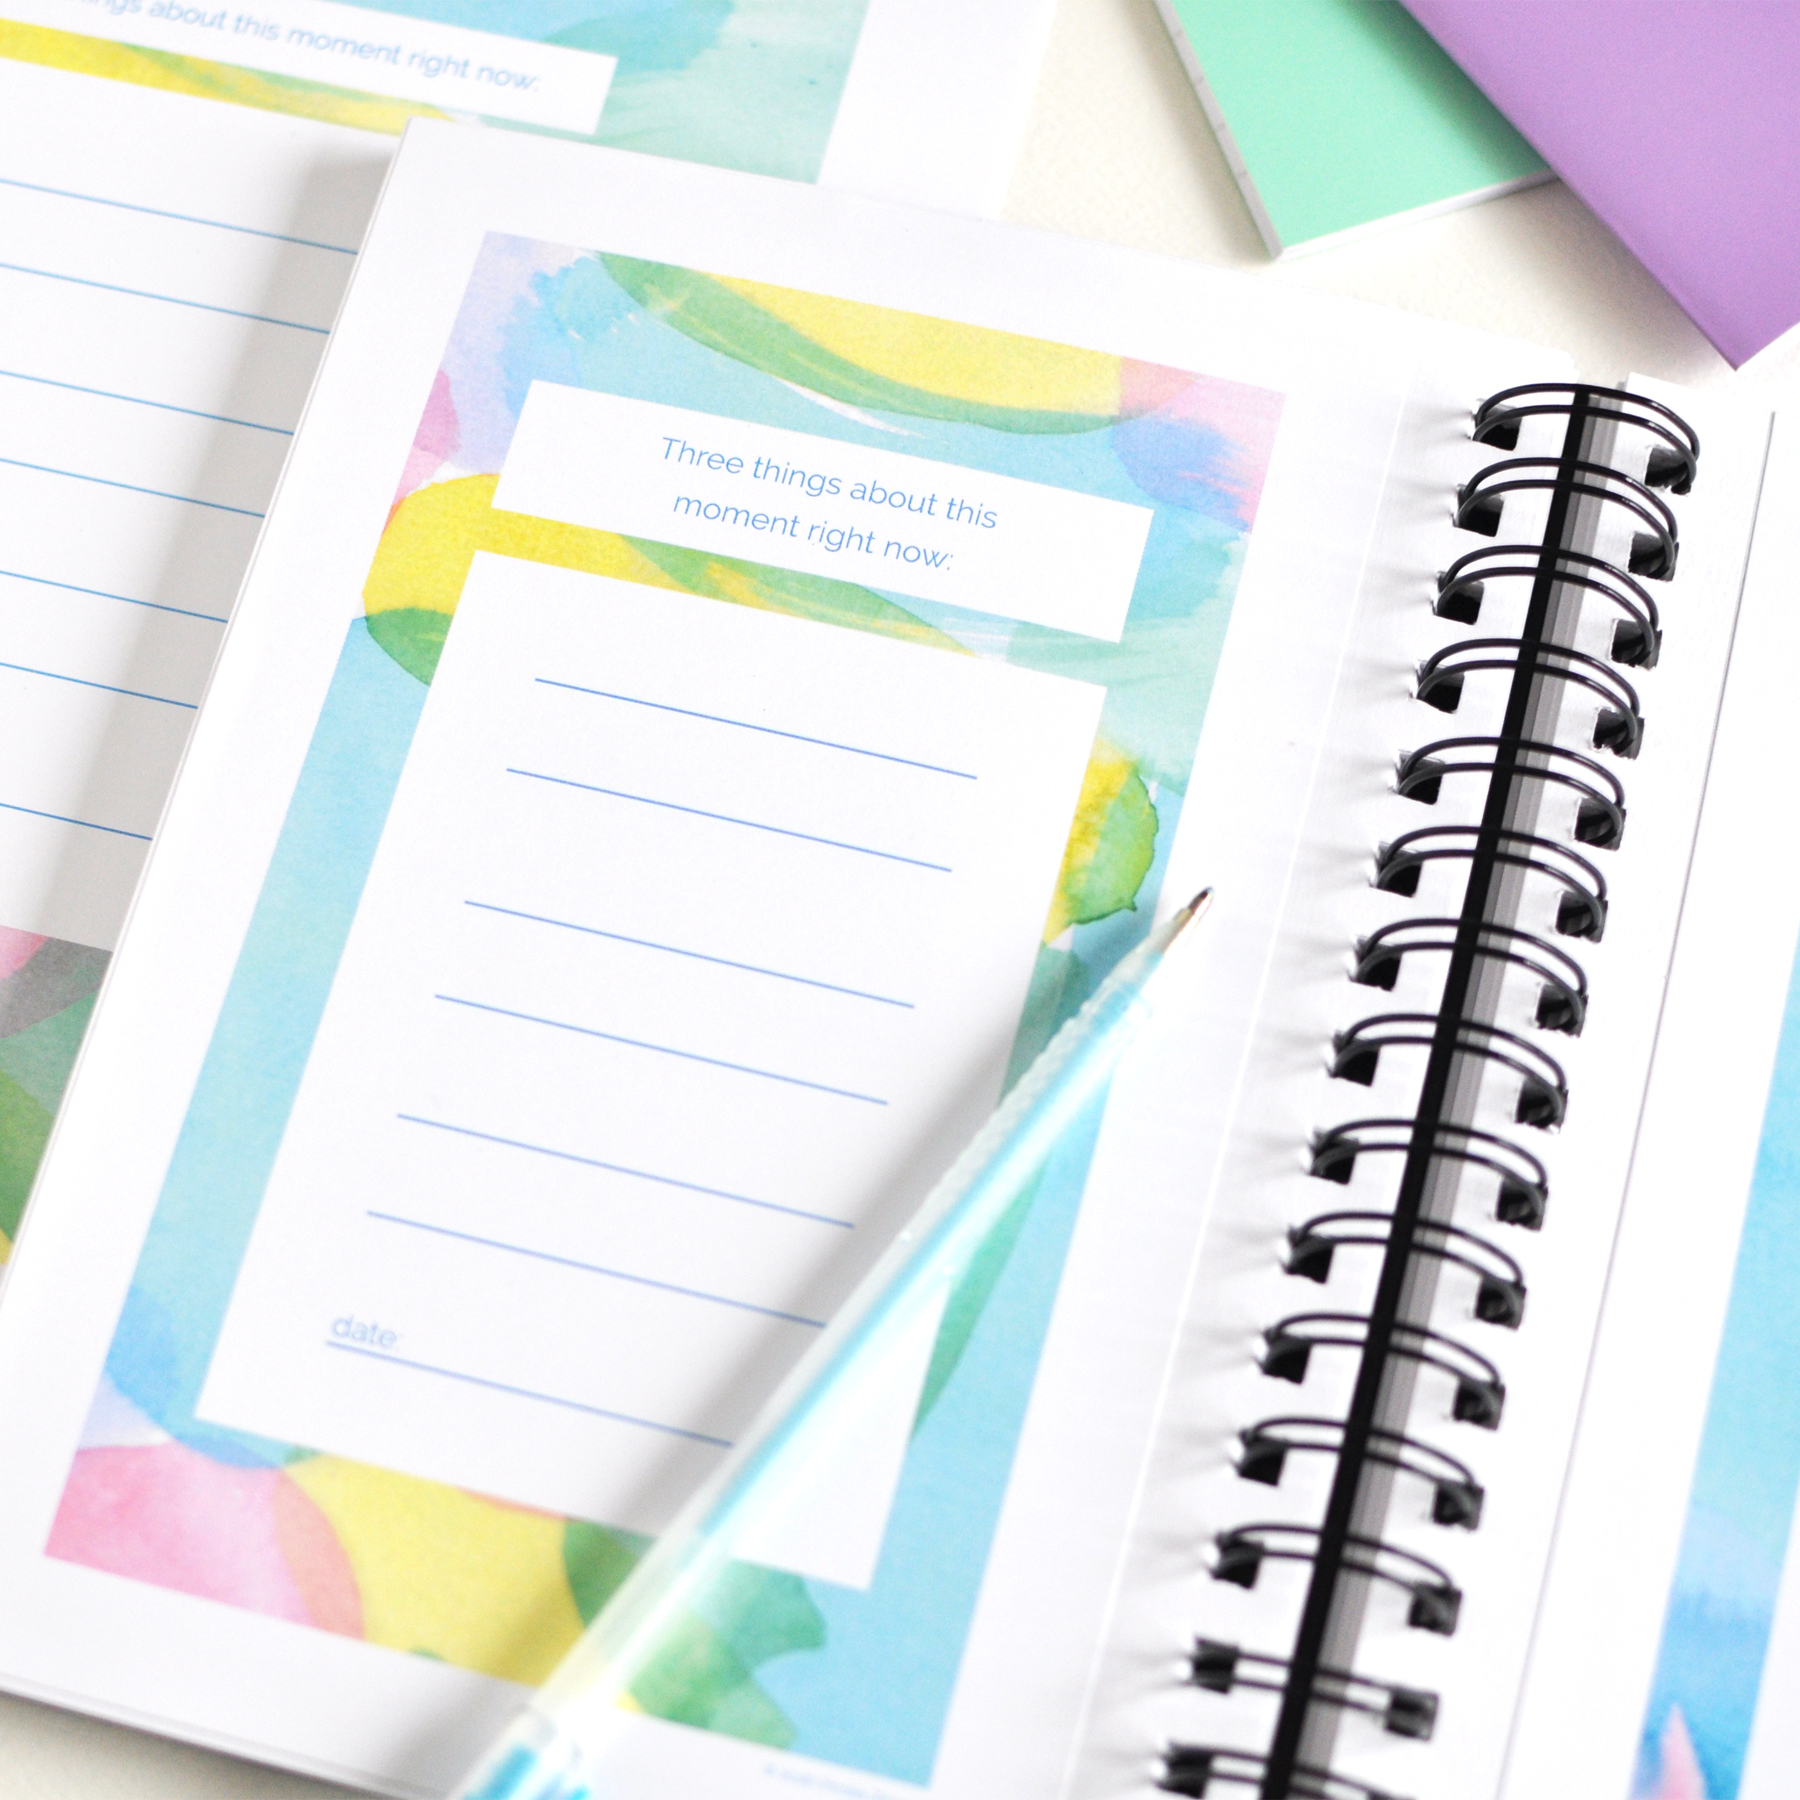 06-02-2019-Printable-Journal-Page-by-Christie-Zimmer.jpg